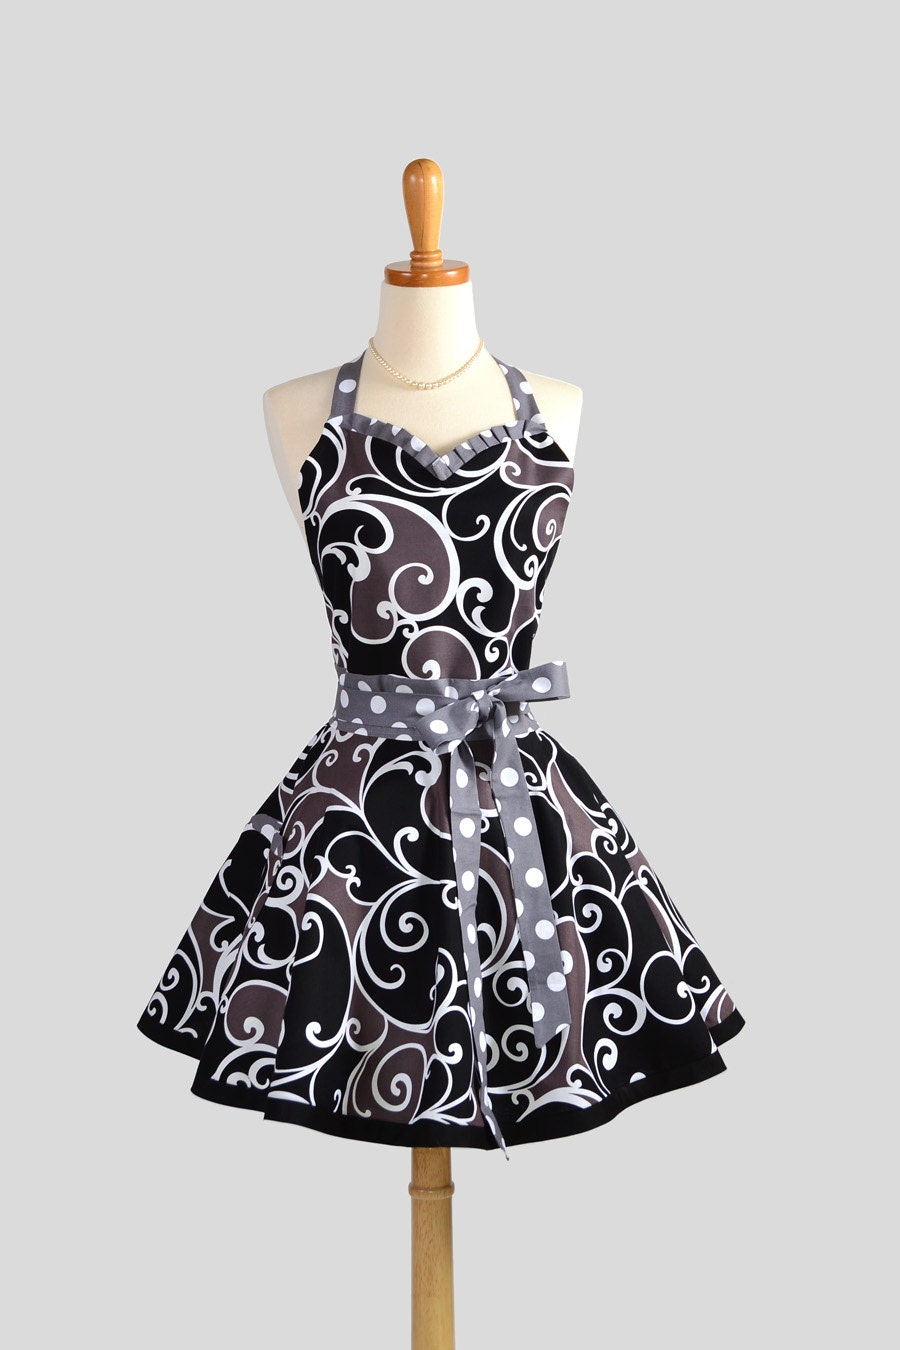 Sweetheart Retro Apron , Sexy Kitchen Apron in Michael Miller Surf Collection Grey Black and White